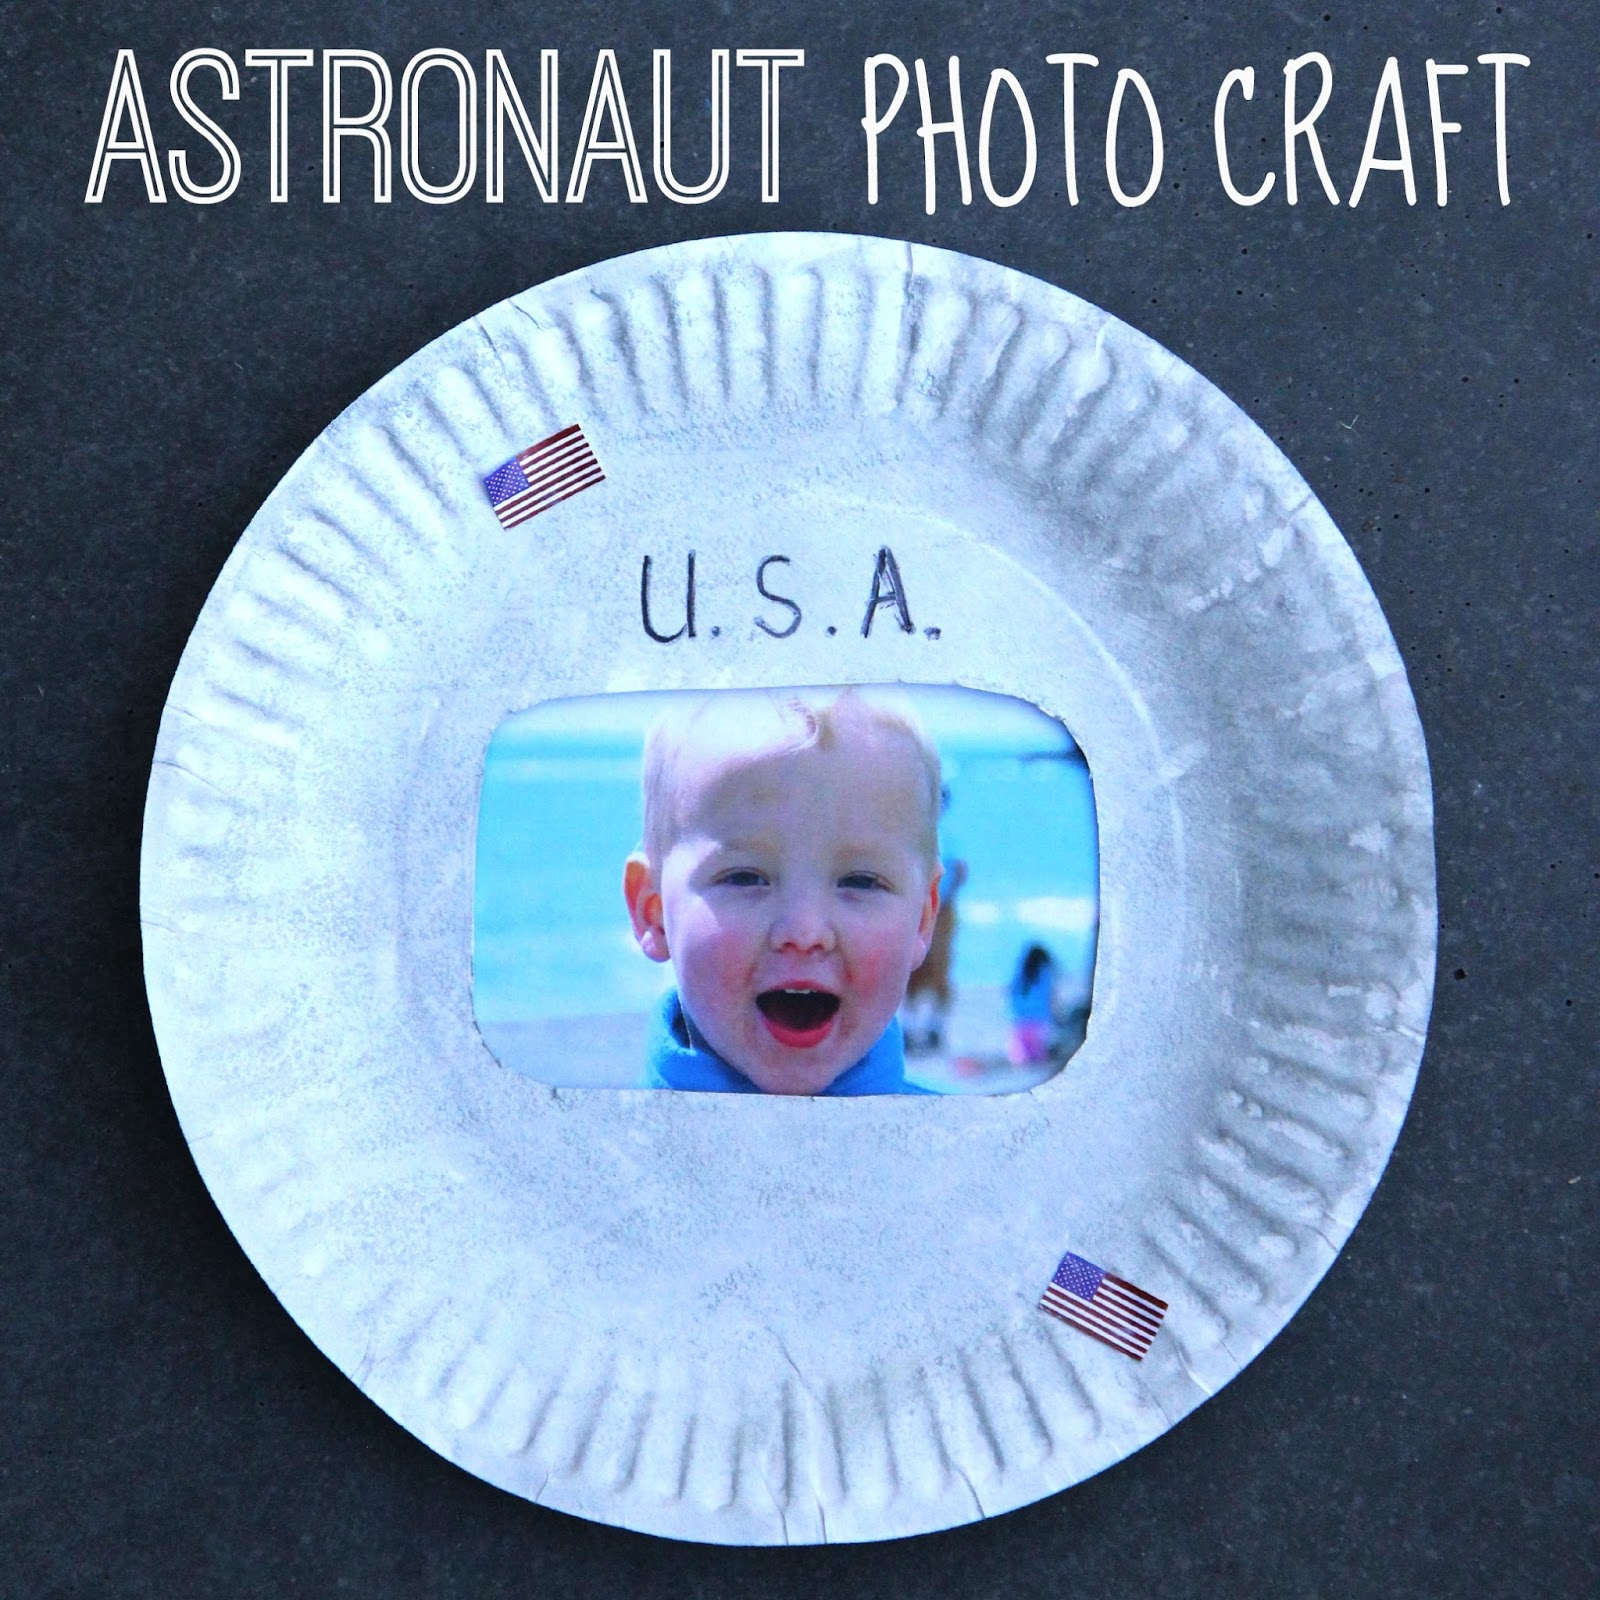 To kick off Space Week we made an American flag craft earlier today and this afternoon we made an paper plate Astronaut craft!  sc 1 st  Toddler Approved! & Toddler Approved!: Astronaut Photo Craft for Kids